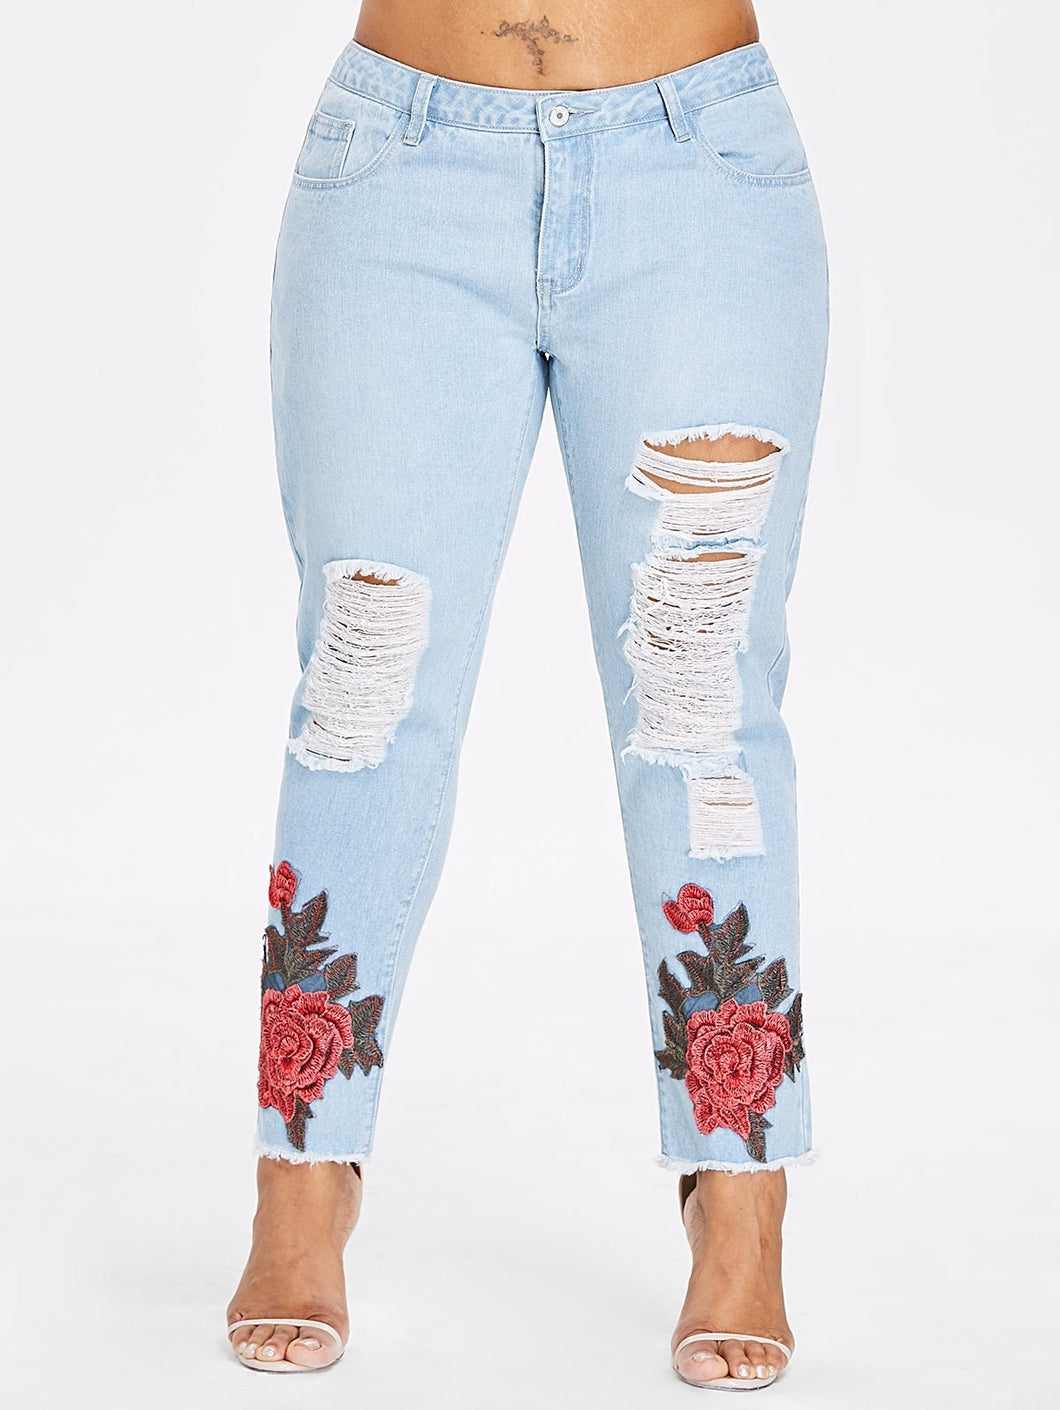 Floral Embroidery Applique Women Jeans 5273